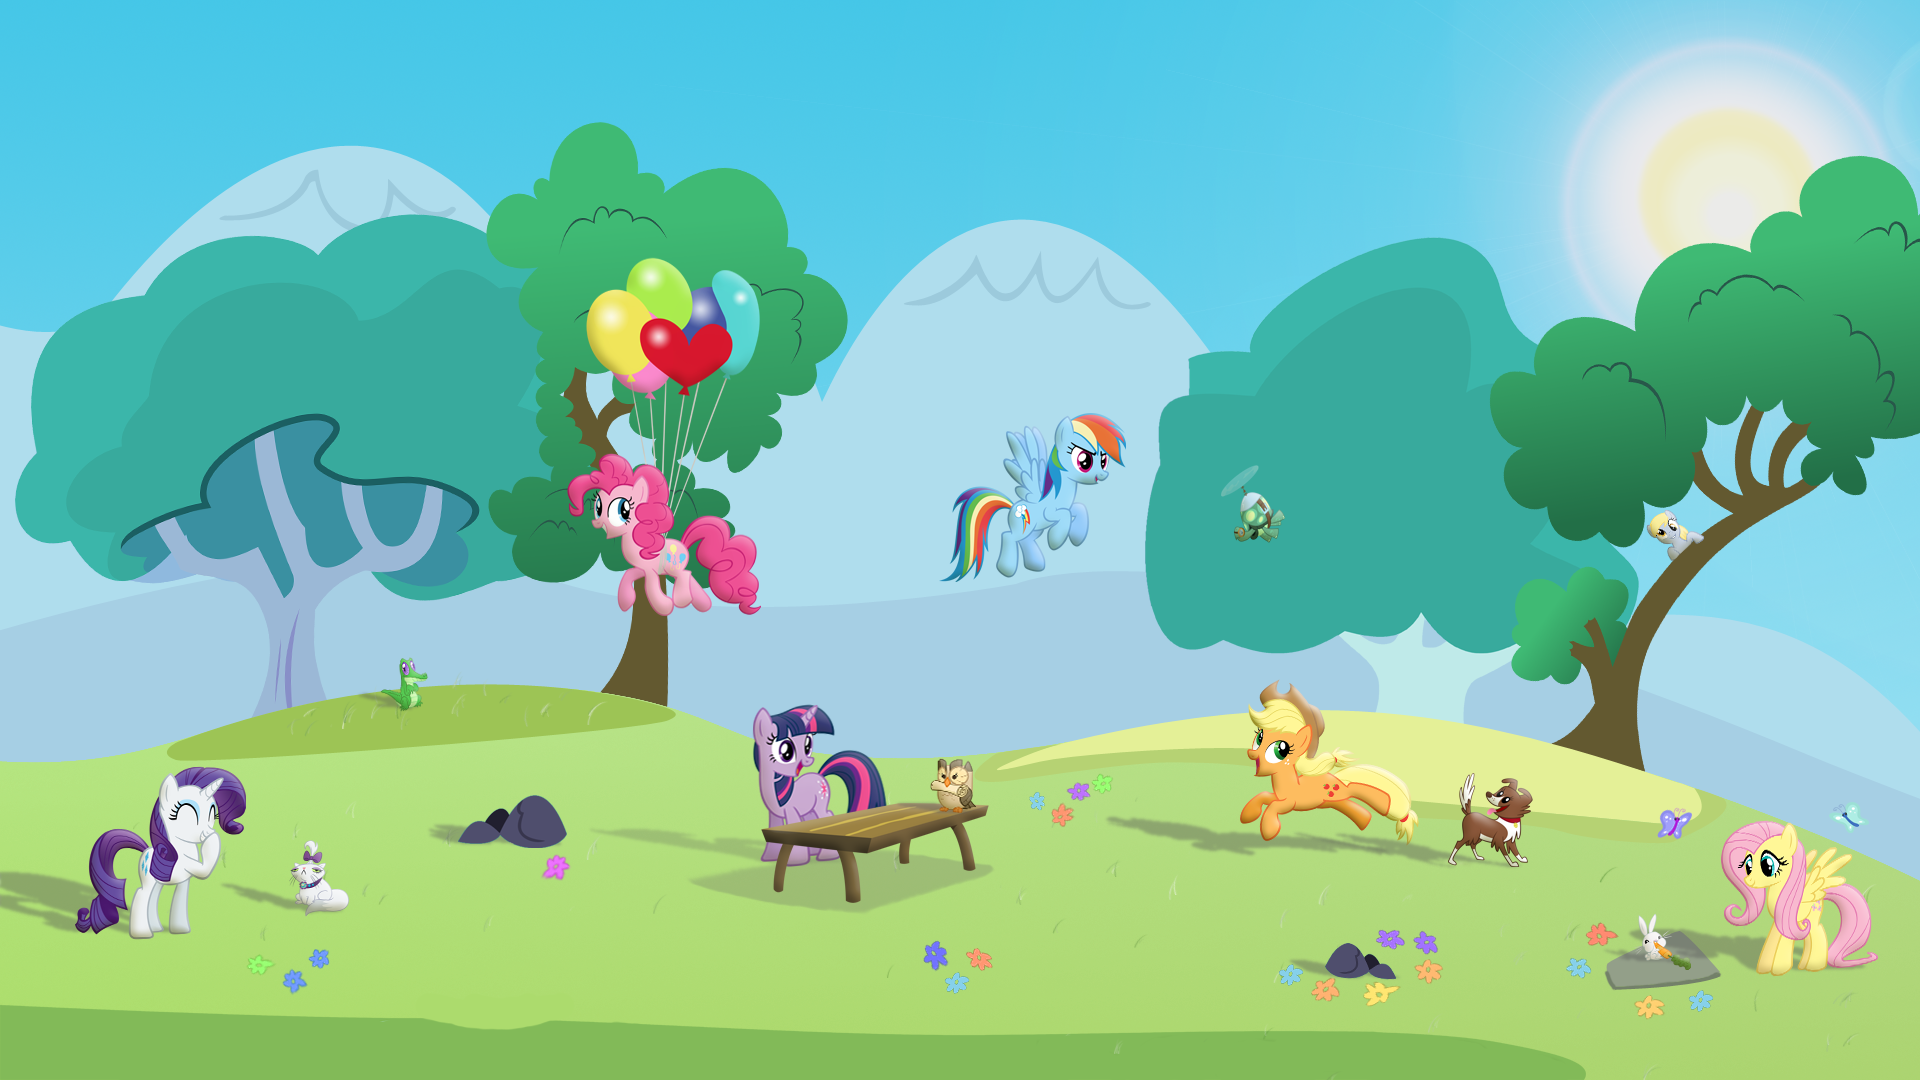 Pony Pet Play Date - Wallpaper by GrugDude